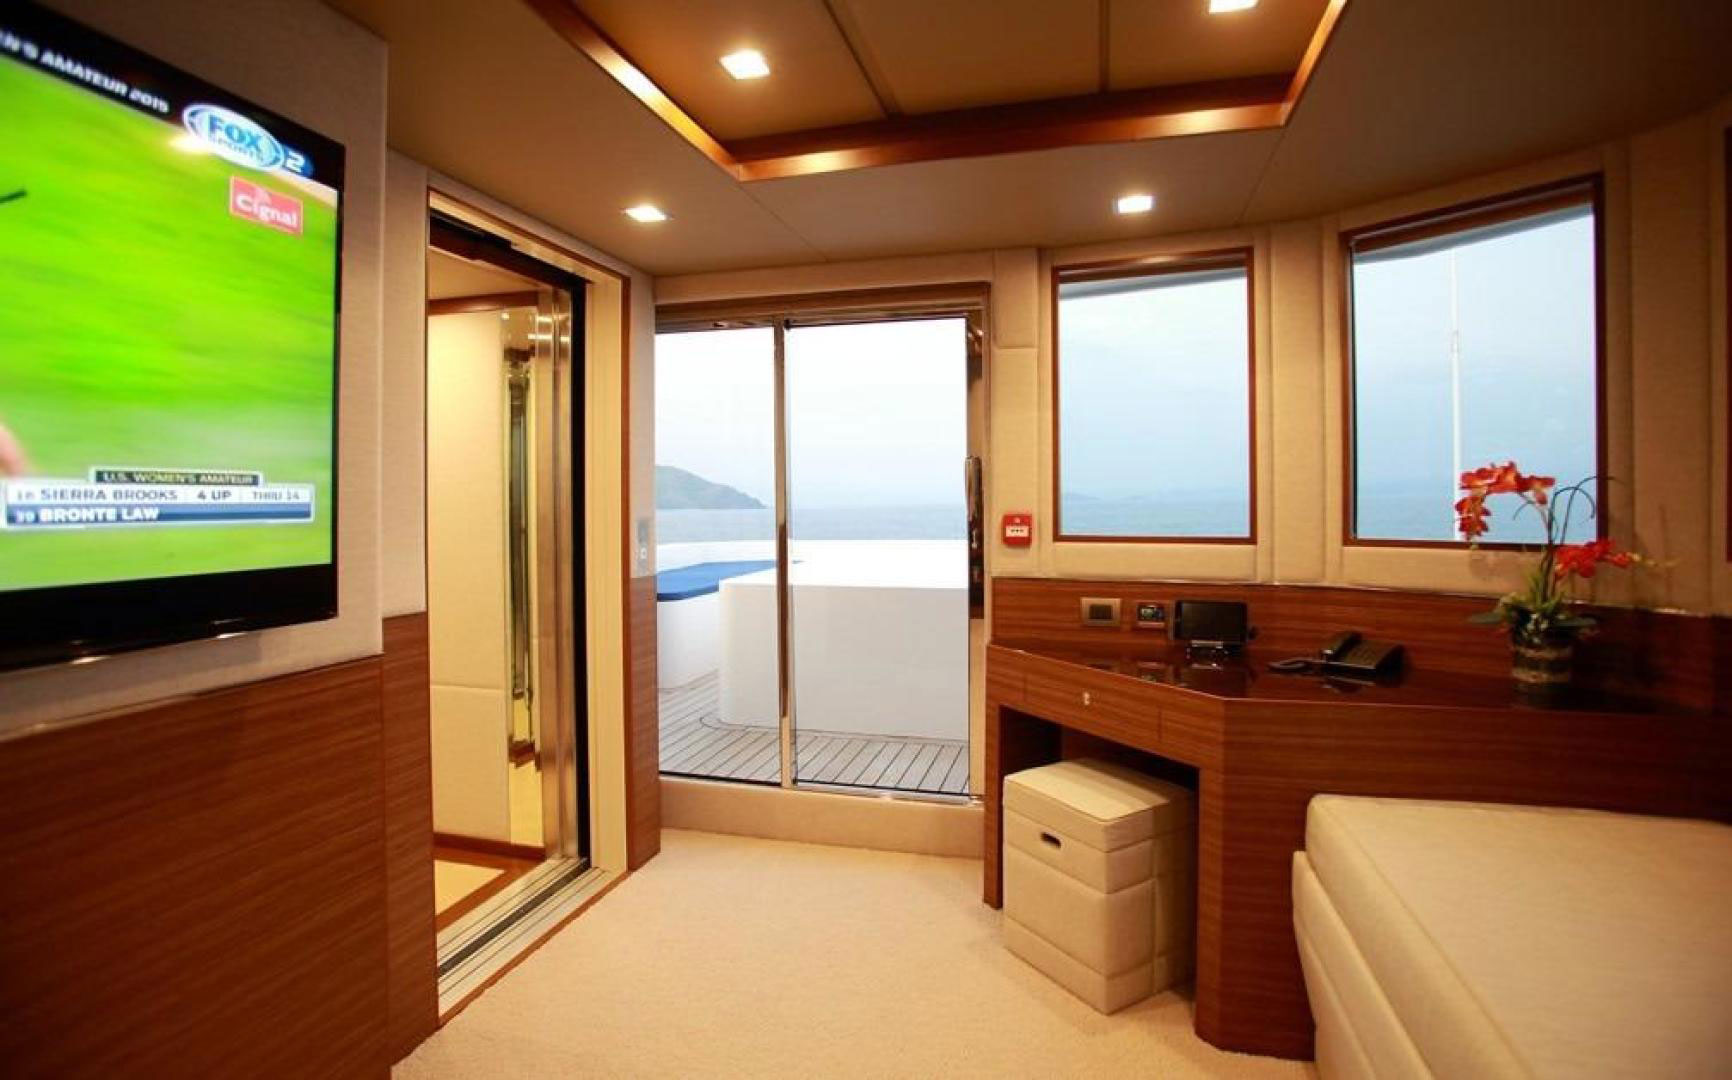 150-ft.-Luxury-Power-Yacht-–-Up-to-200-People - interior2